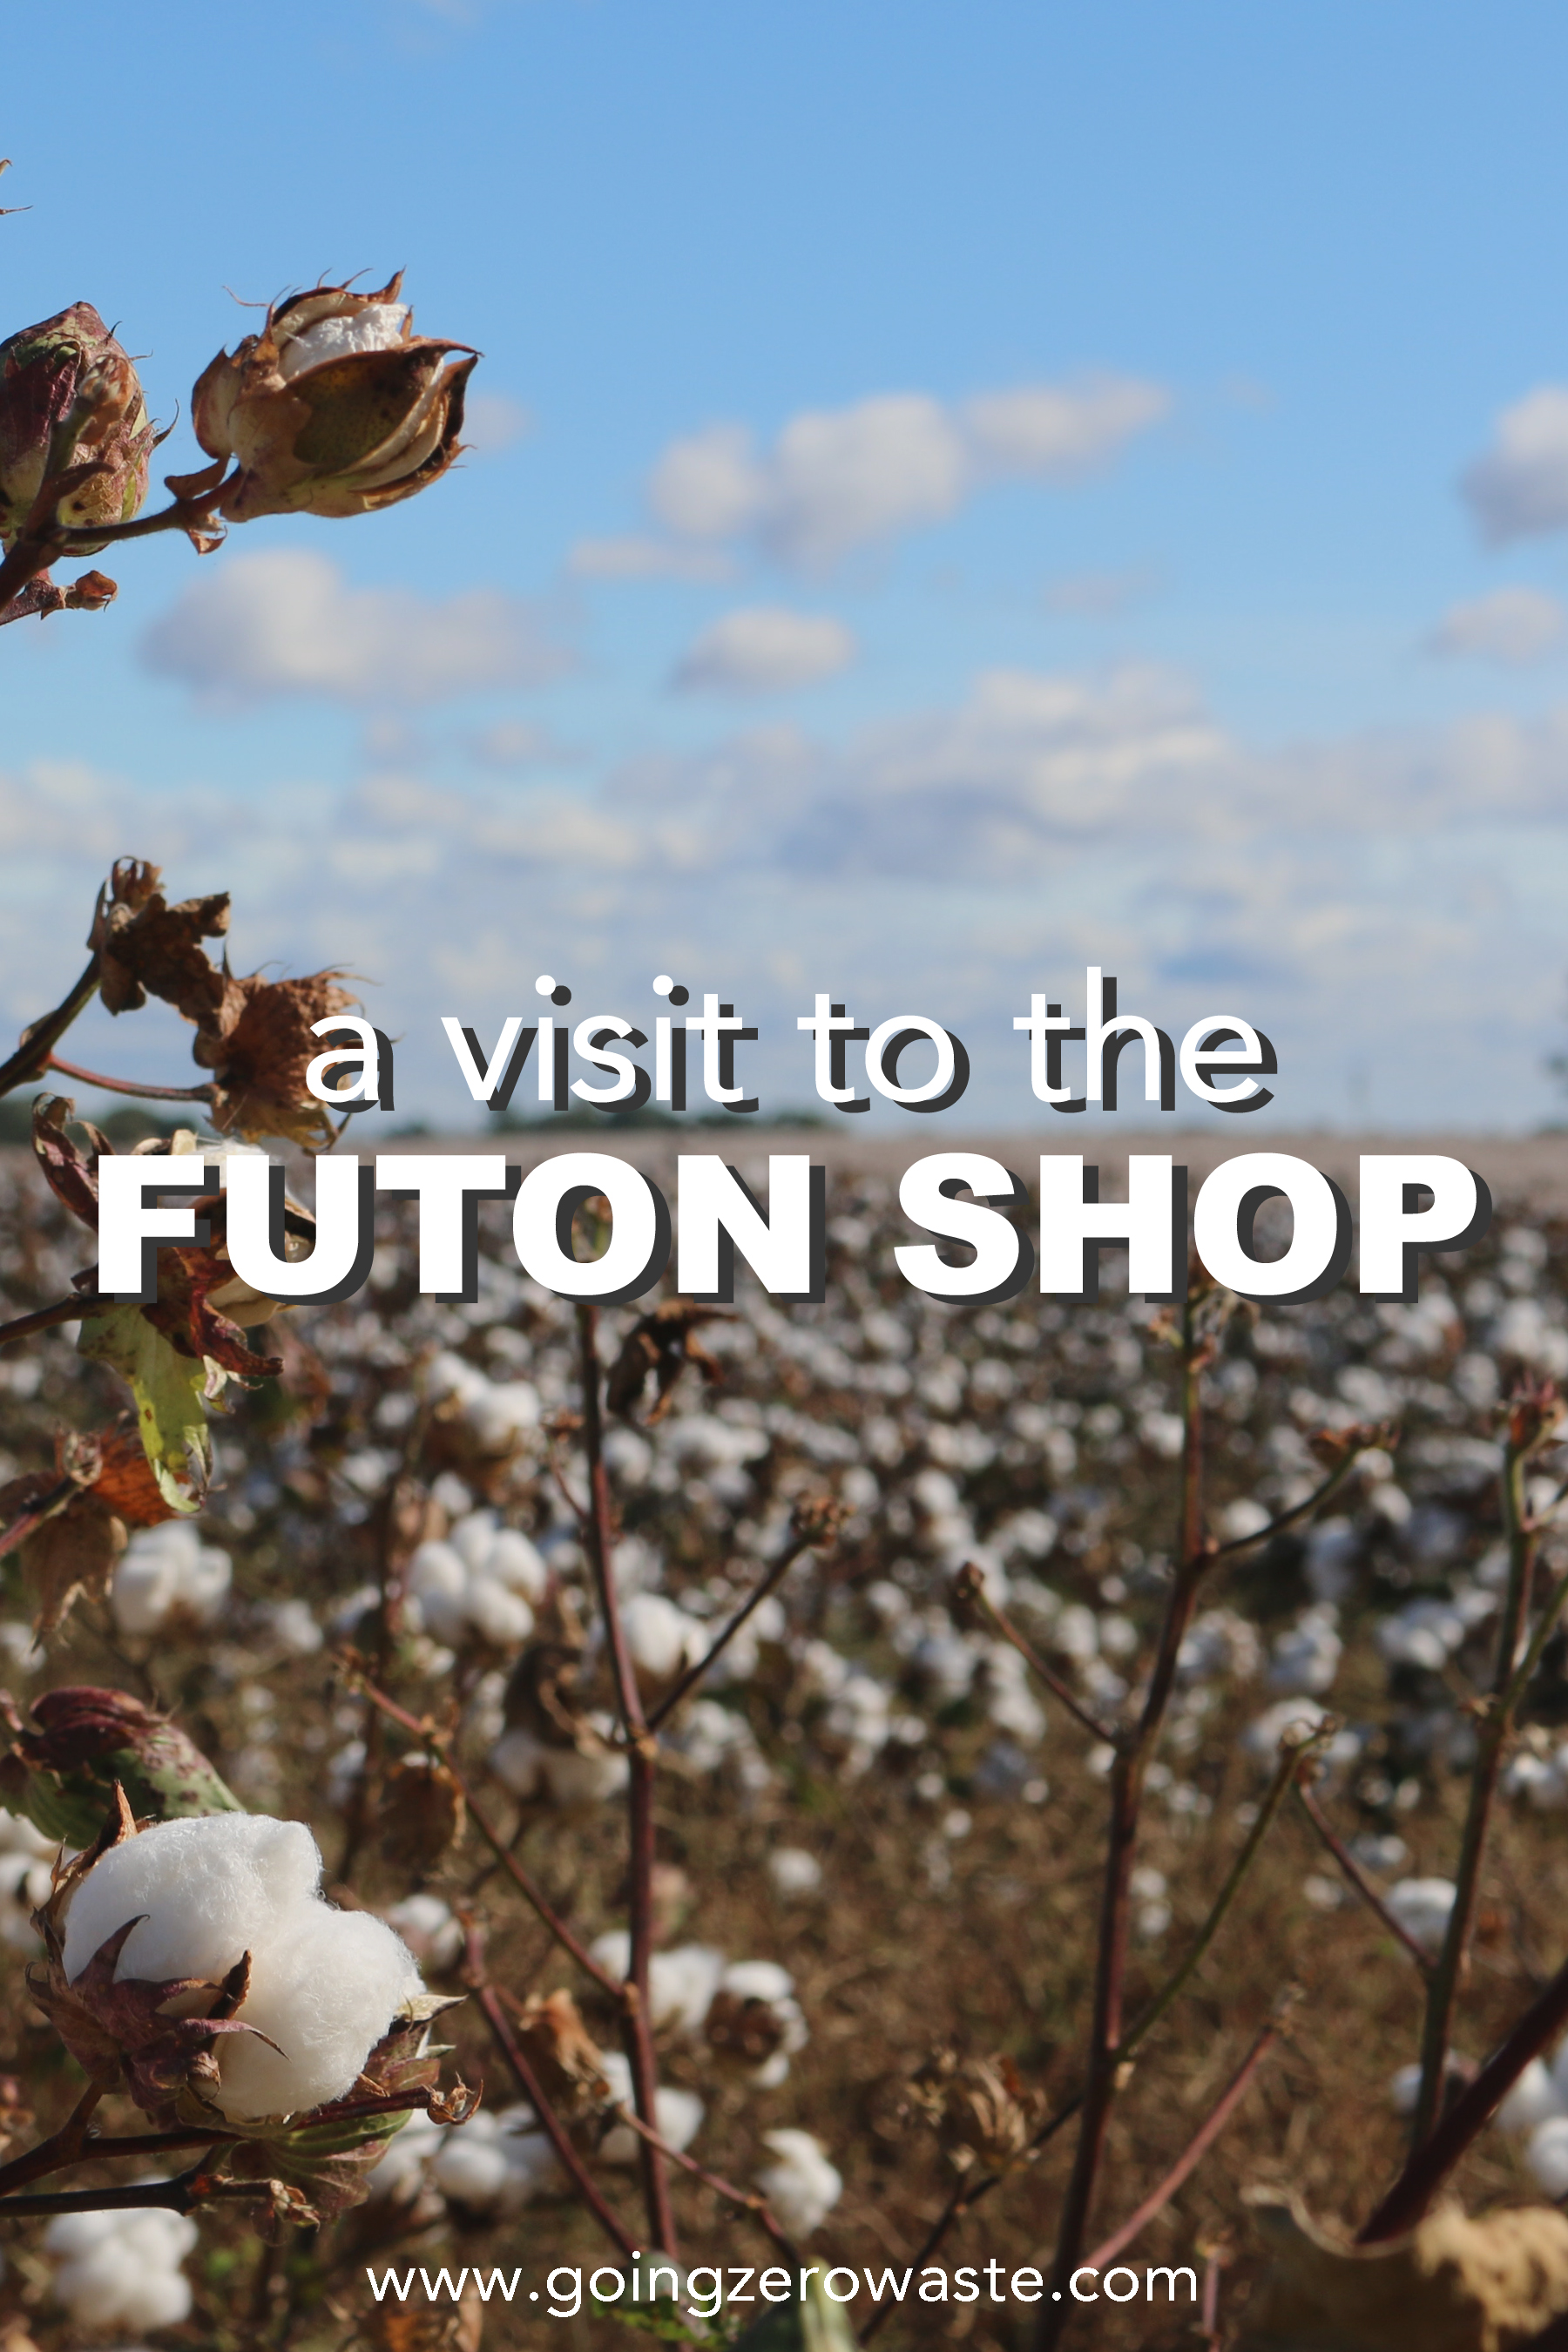 A visit to the futon shop from www.goingzerowaste.com